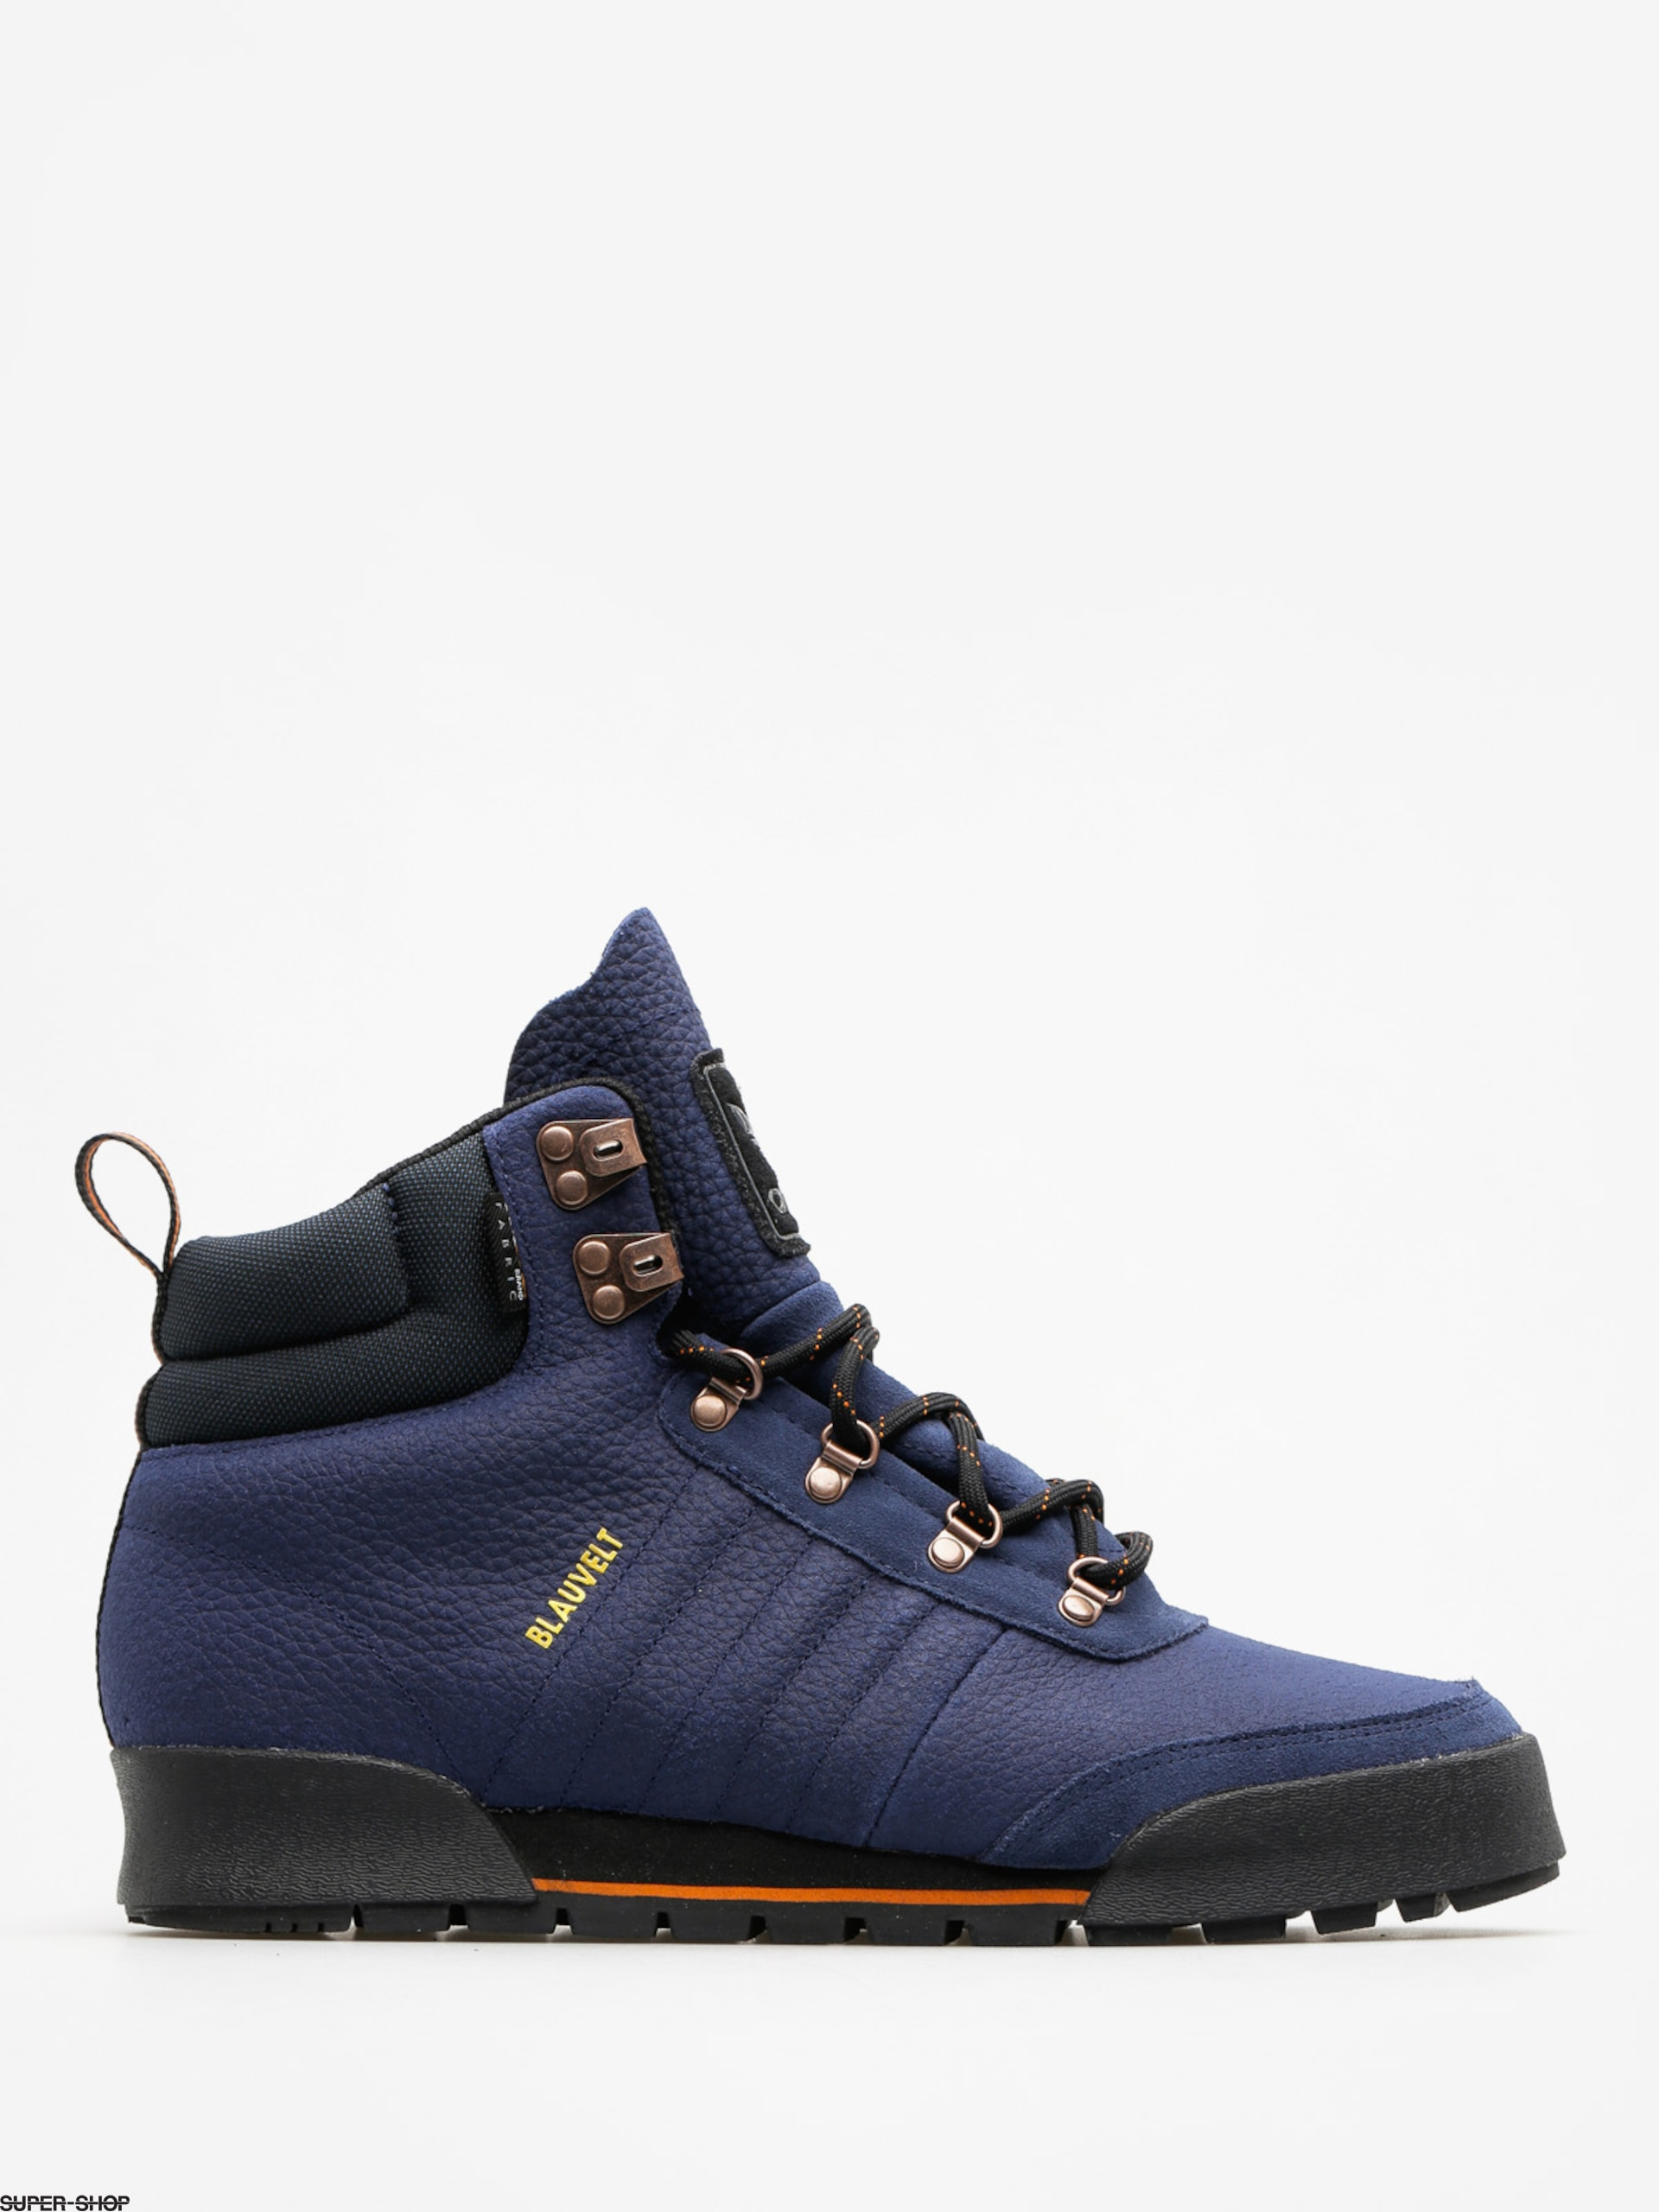 adidas Winter shoes Jake Boot 2.0 (conavy/custom/cblack)